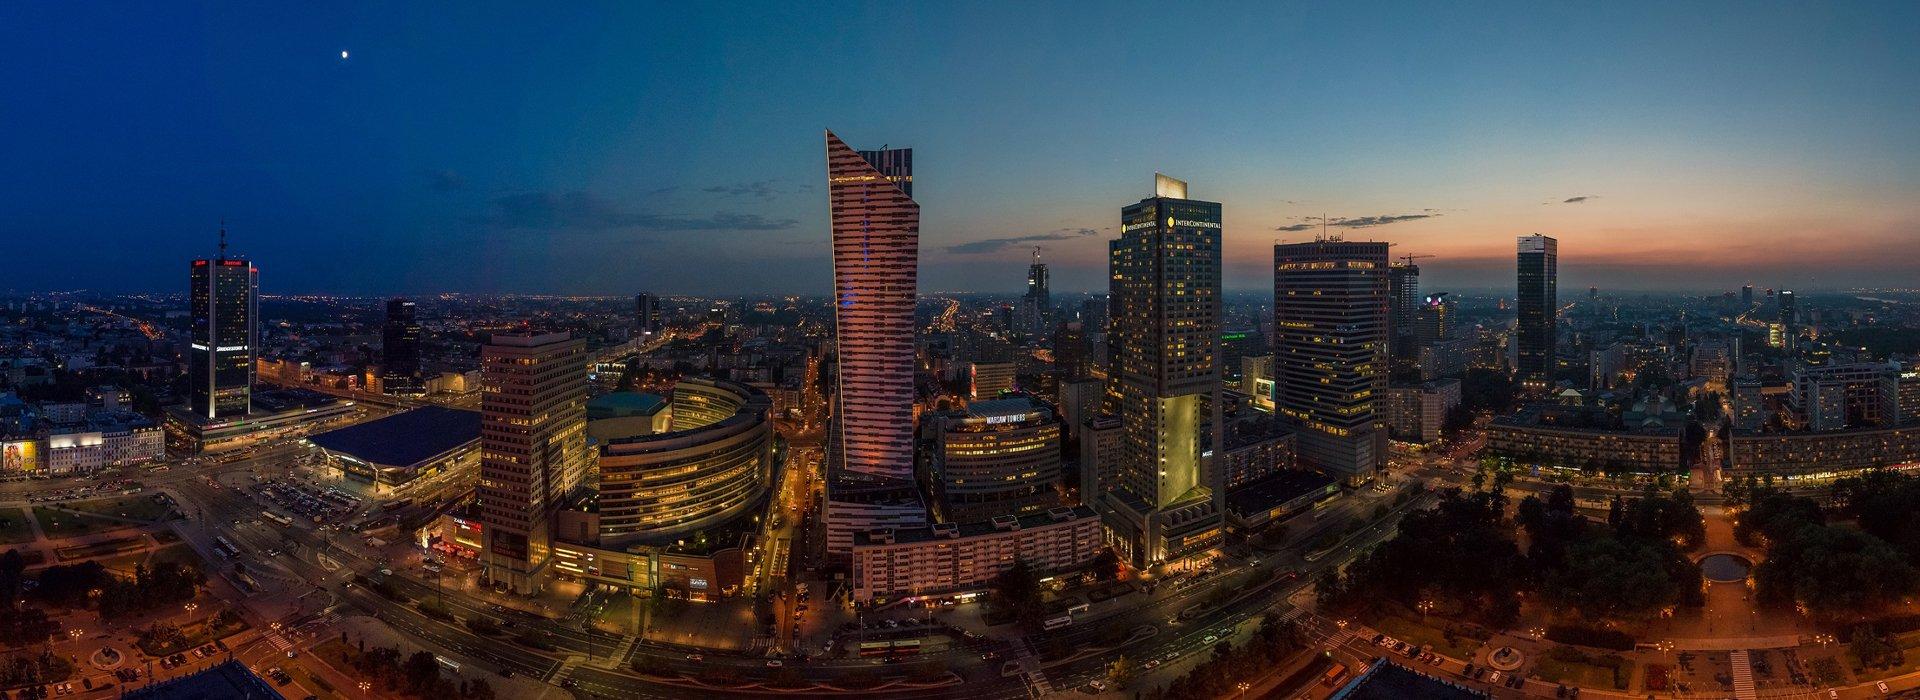 Magnificent night panoramas of Warsaw's city center